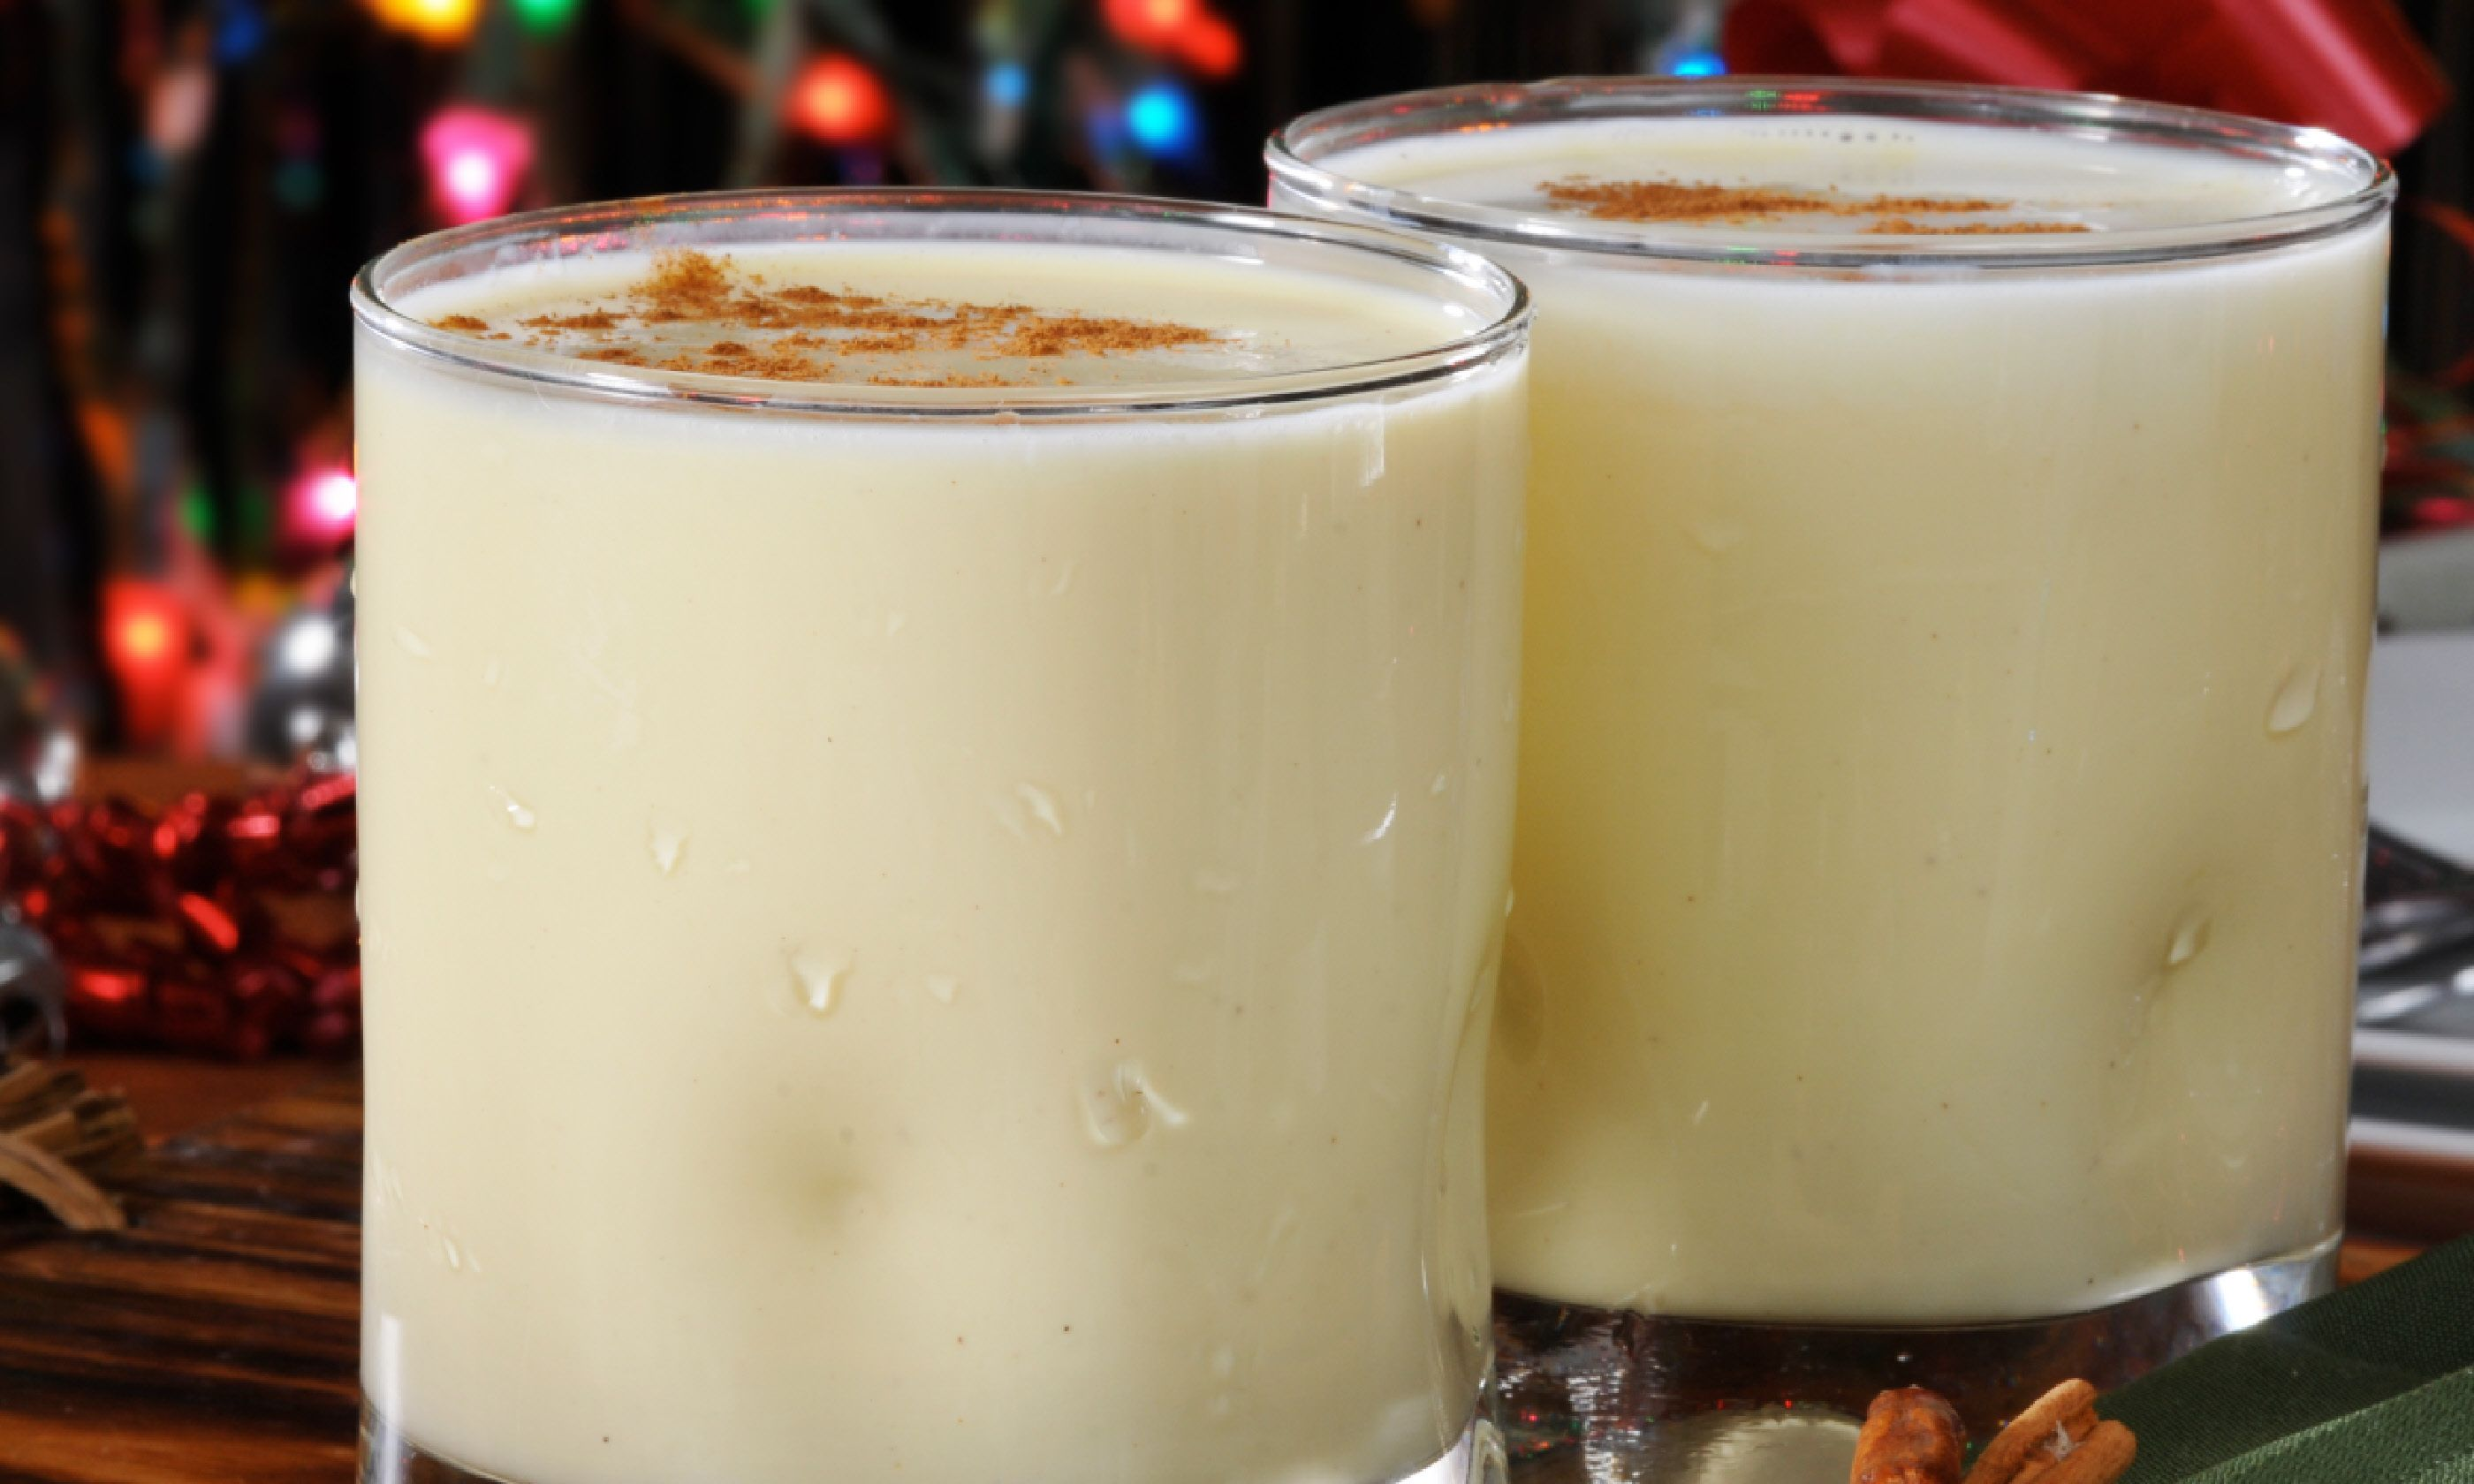 Eggnog with cinnamon sticks (Shutterstock)